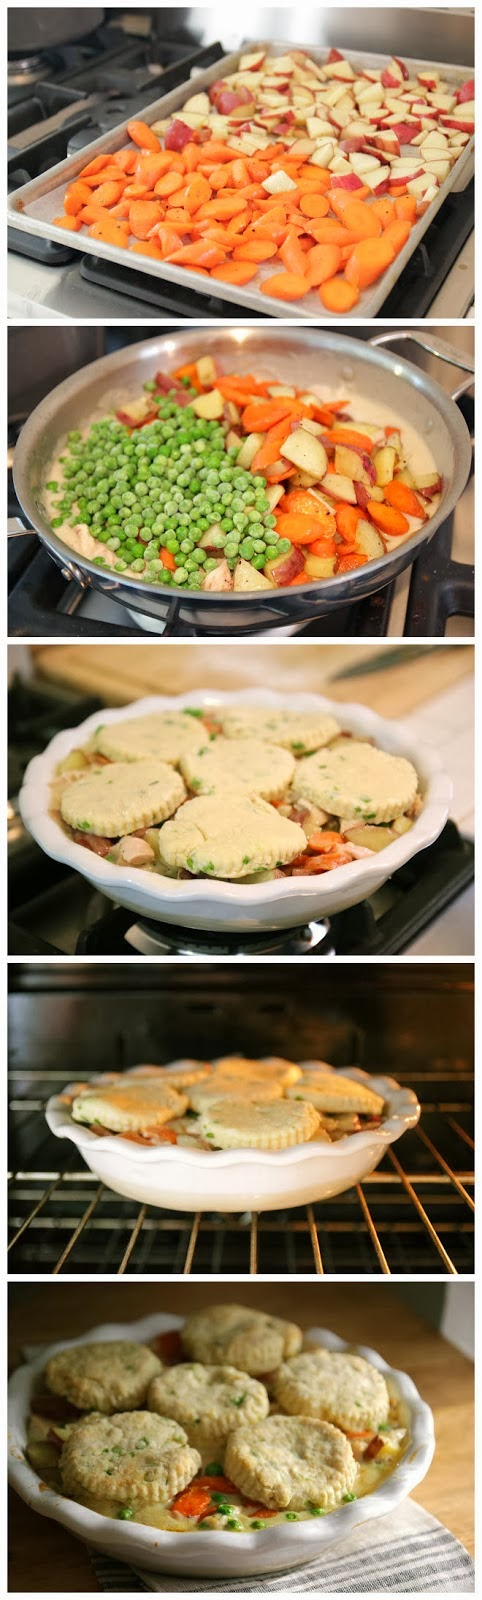 Chicken-Chive-Biscuits-Pot-Pie-Recipe